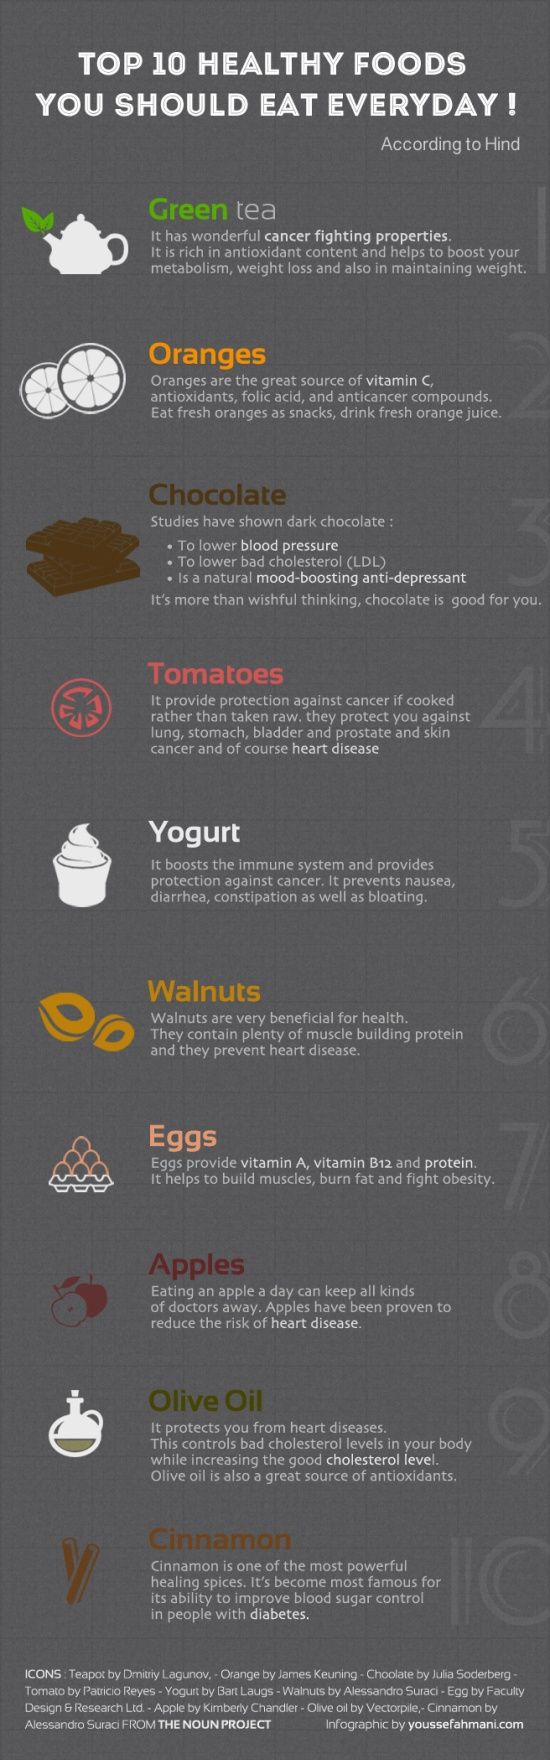 We found this infographic to be very interesting. So how about some yogurt for todays' breakfast?